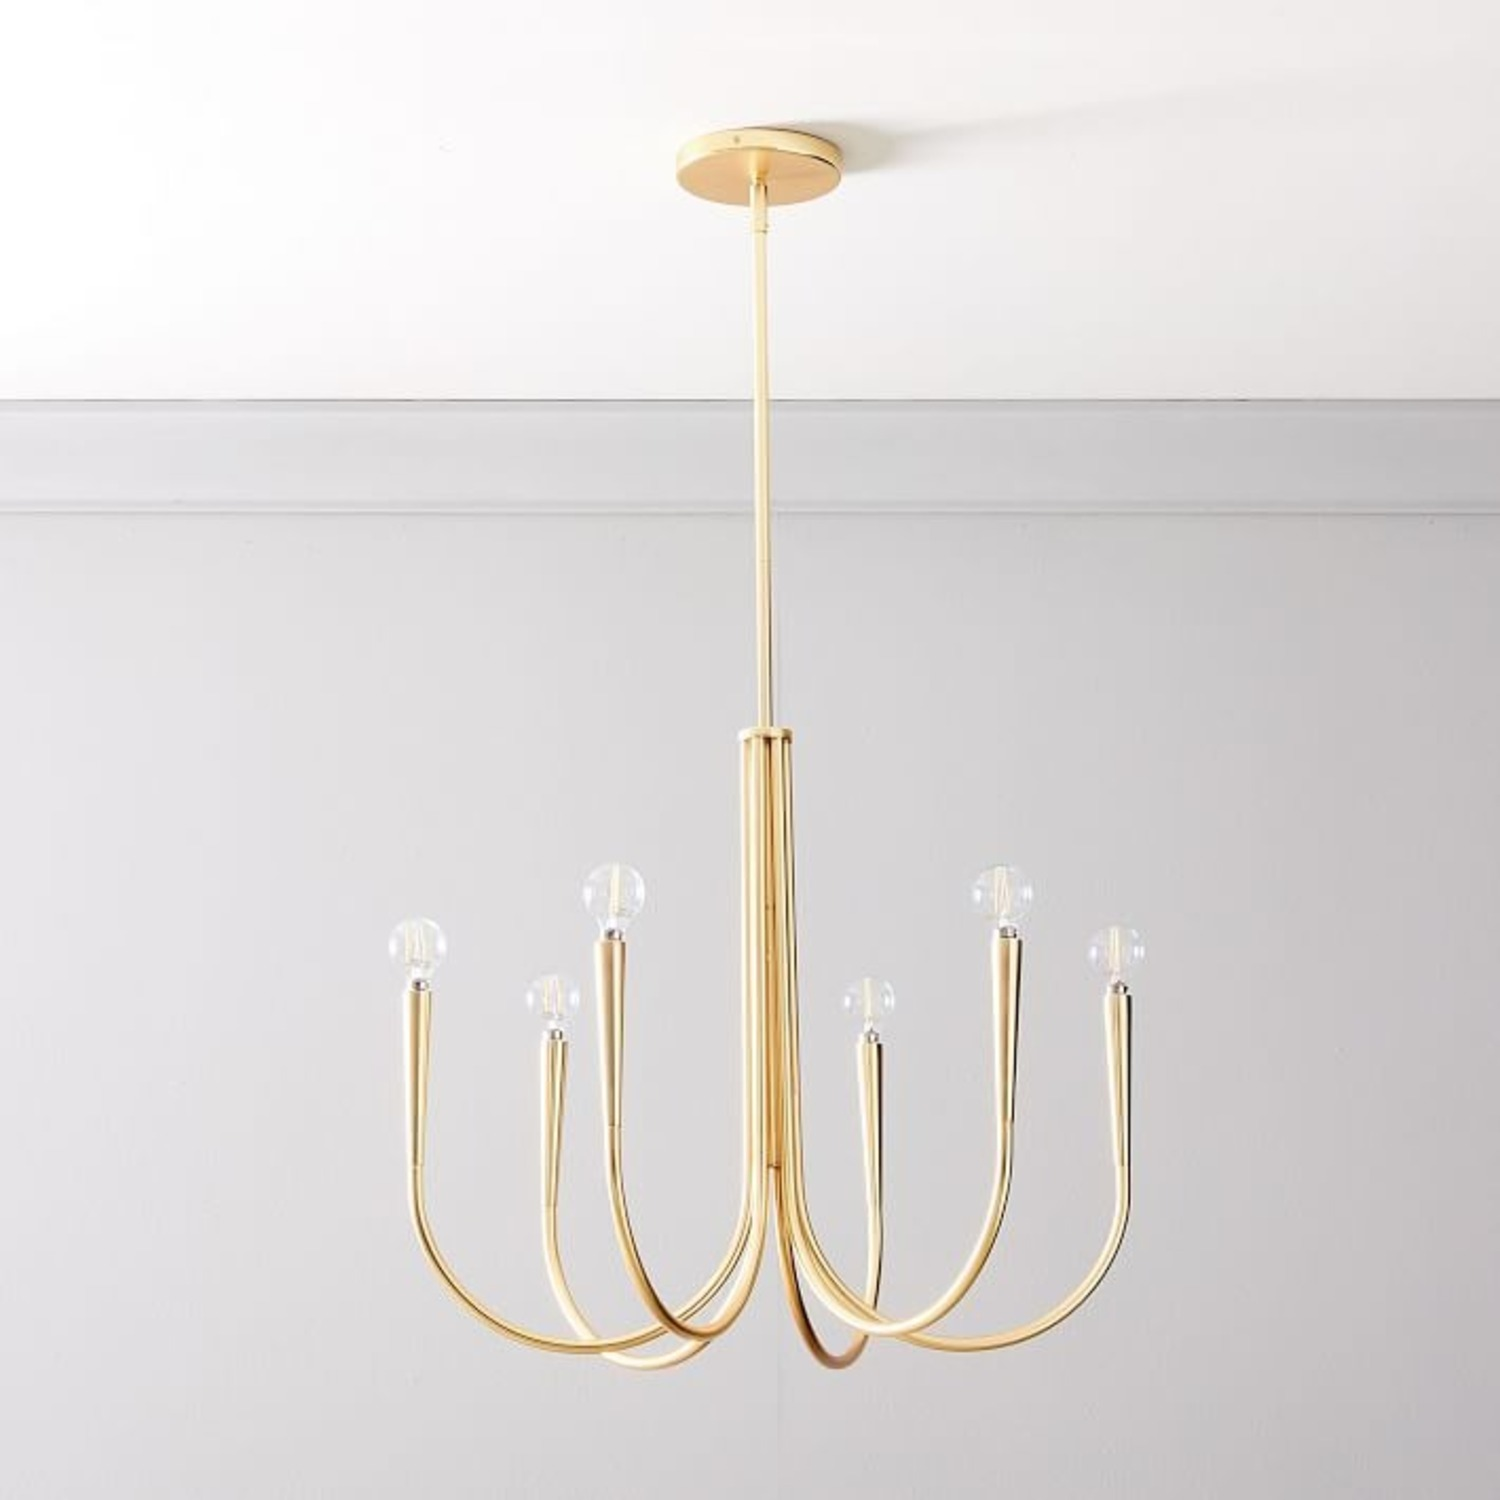 West Elm Swoop Arm Chandelier, Small, Brass - image-1